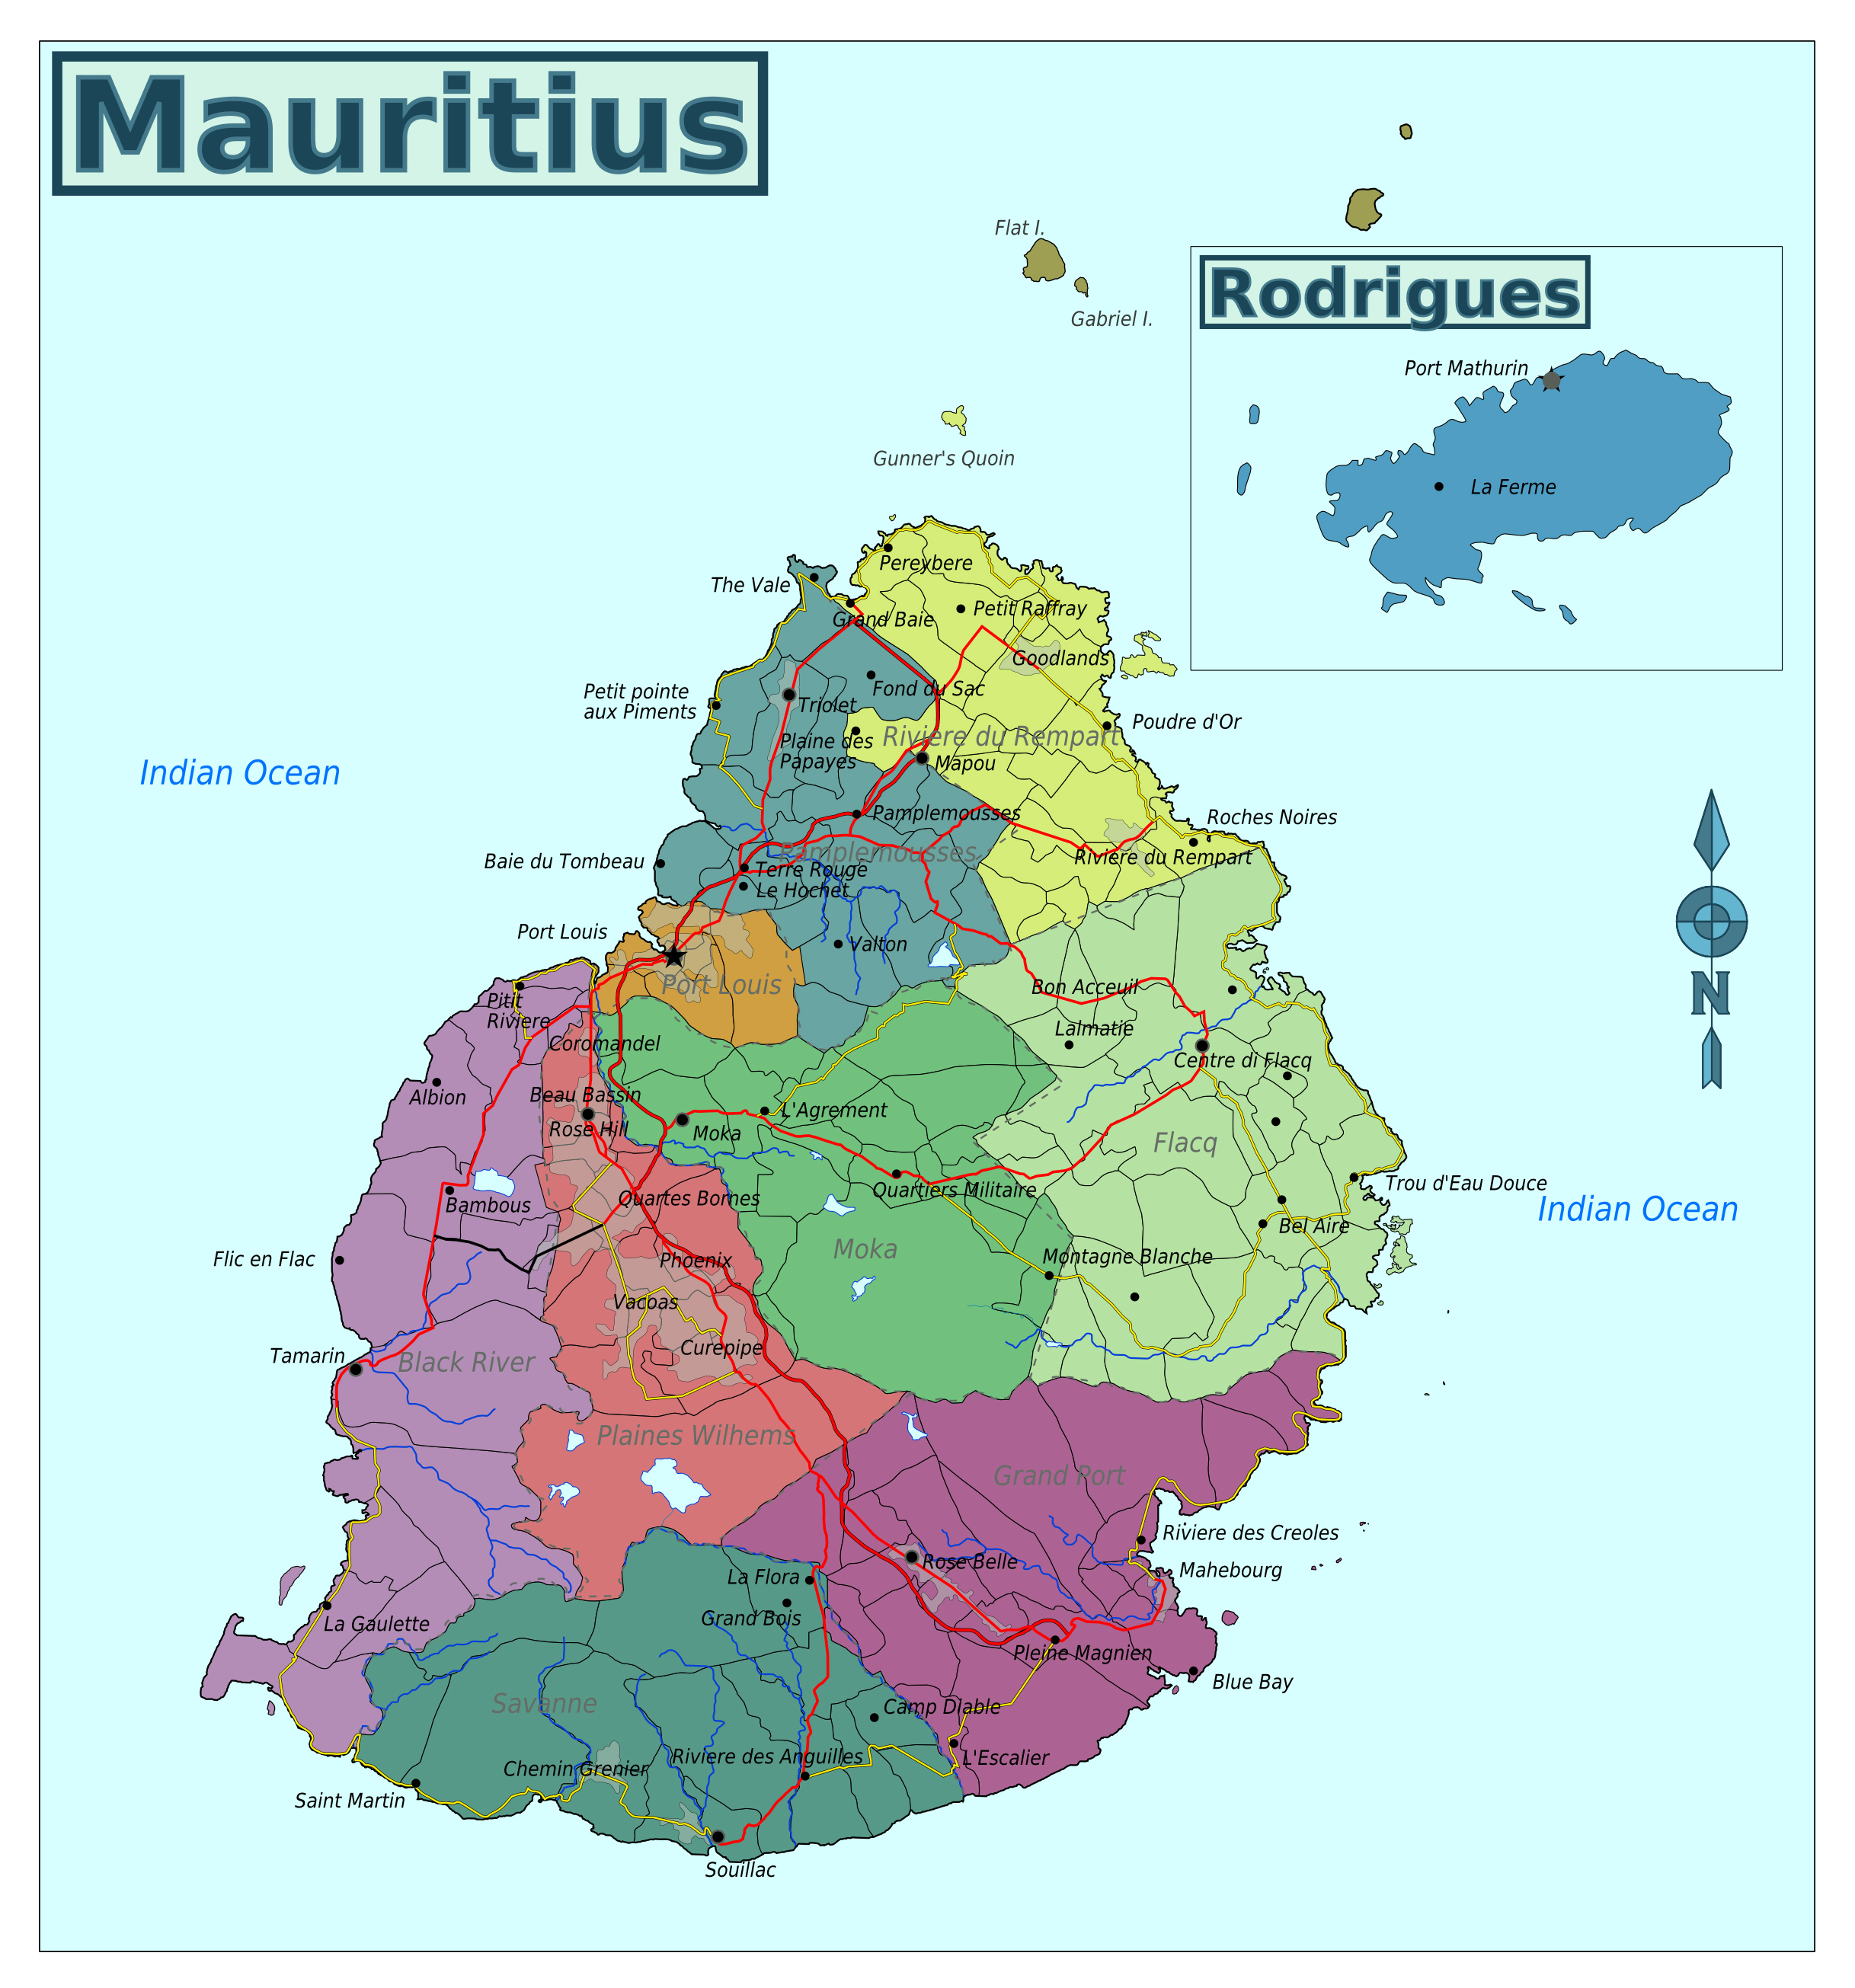 Large Regions Map Of Mauritius Mauritius Africa Mapsland - Mauritius map africa